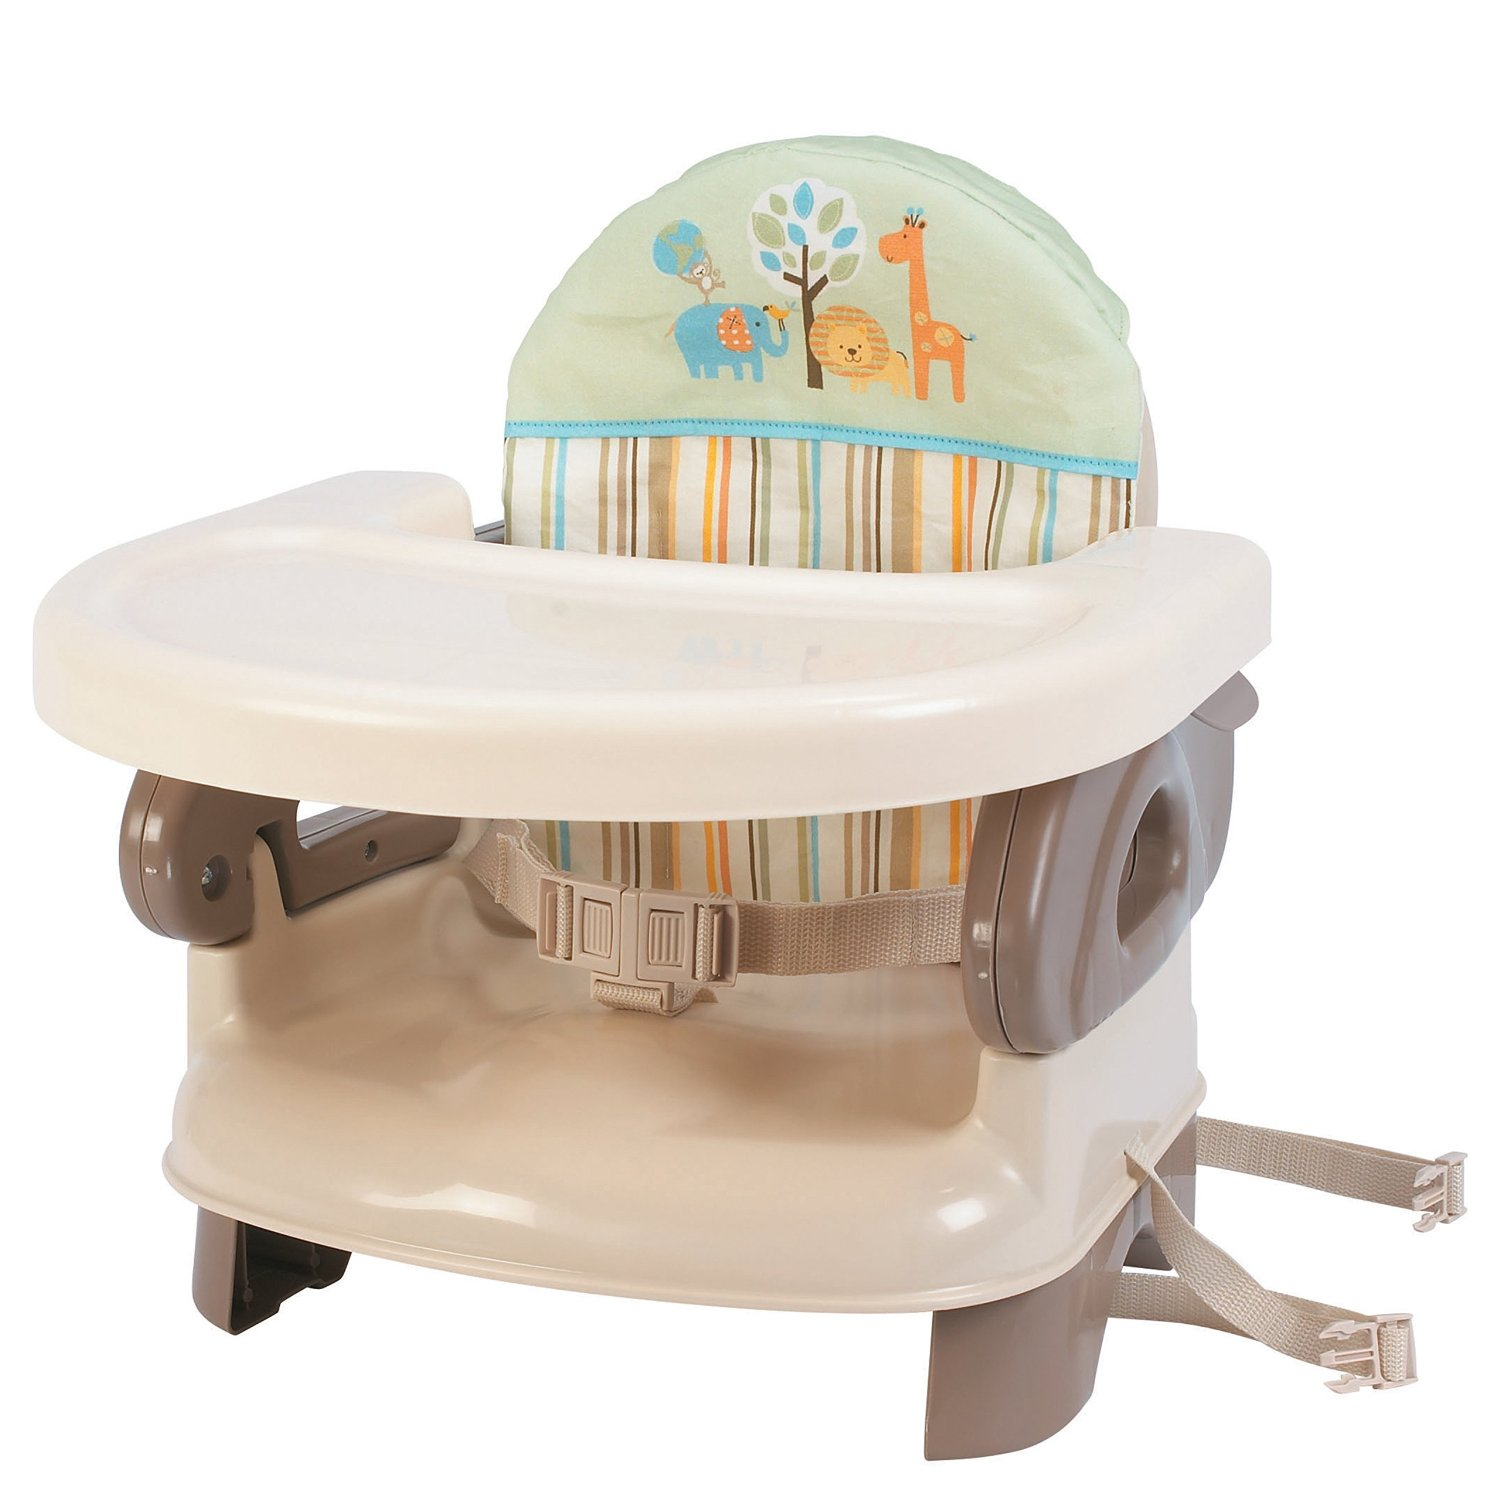 Genial Summer Infant Deluxe Comfort Folding Booster Seat   Tan   Walmart.com